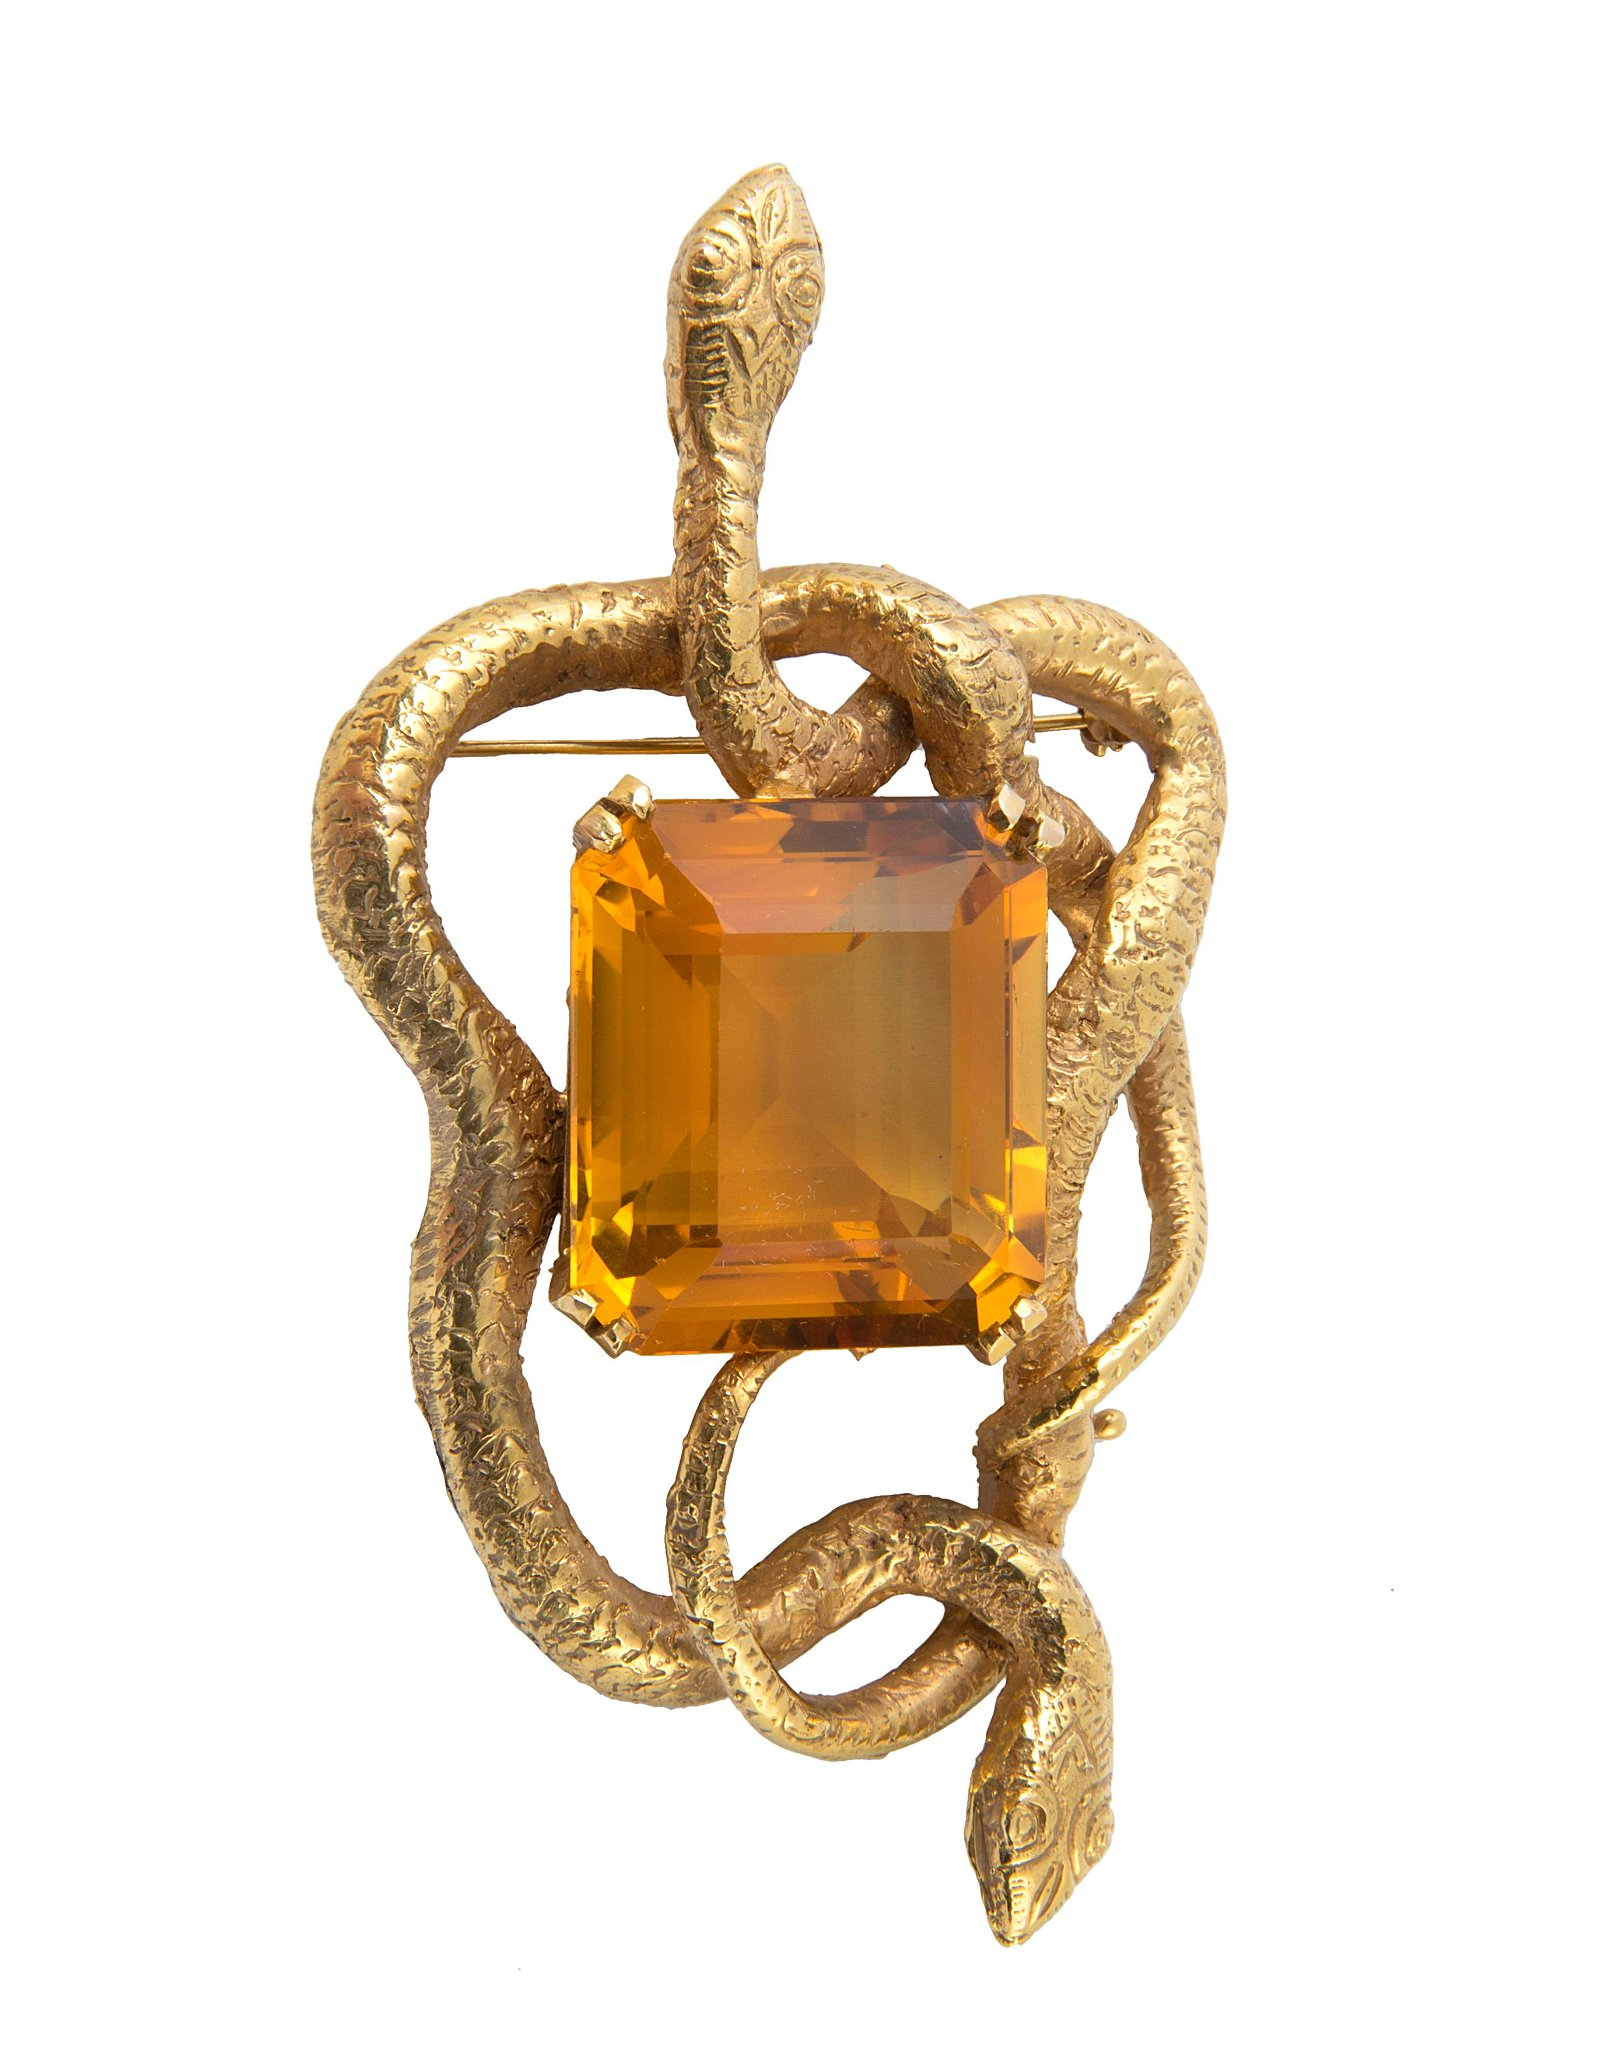 A LATE 20TH CENTURY ERIC DE KOLB 14K GOLD AND CITRINE